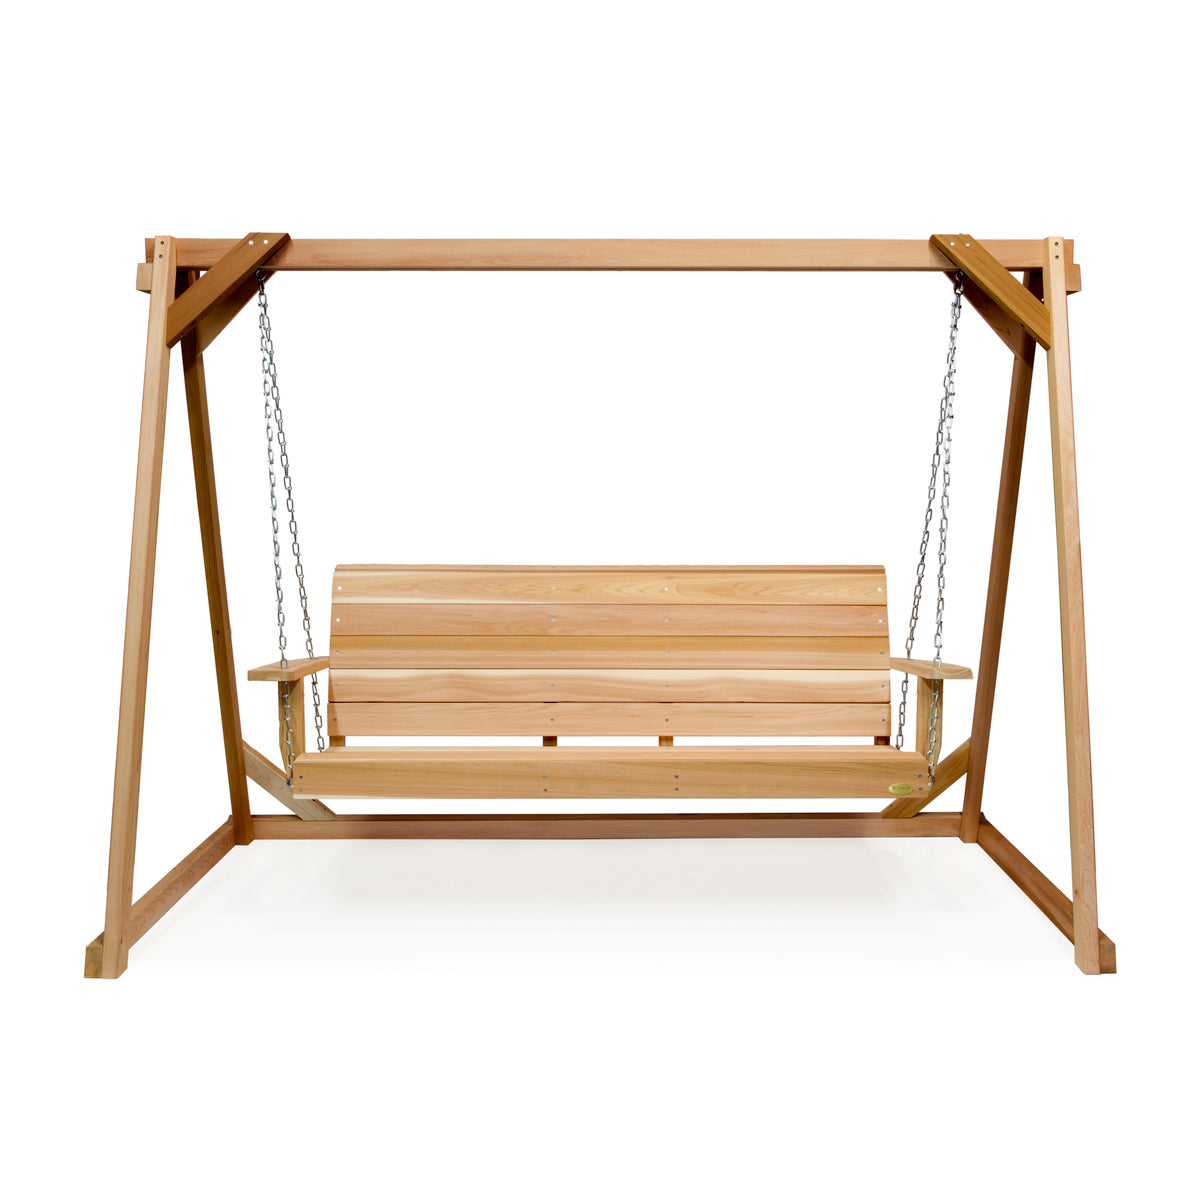 Porch Swing Set 8' Swing A-Frame and 5' Swing Cedar